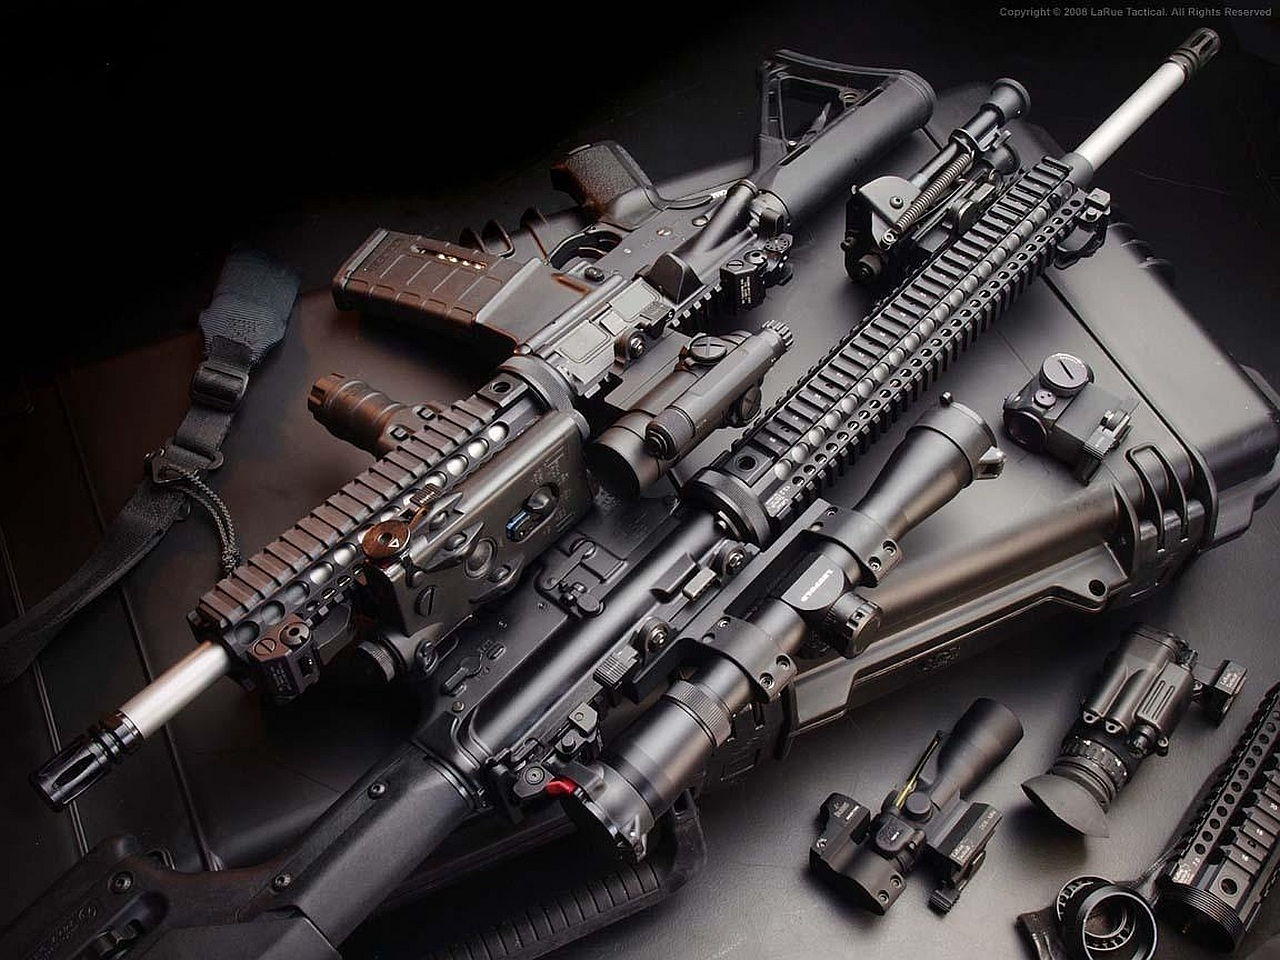 Armas-Fuzil-De-Assalto-Papel-de-Parede-wallpaper-wp3003311